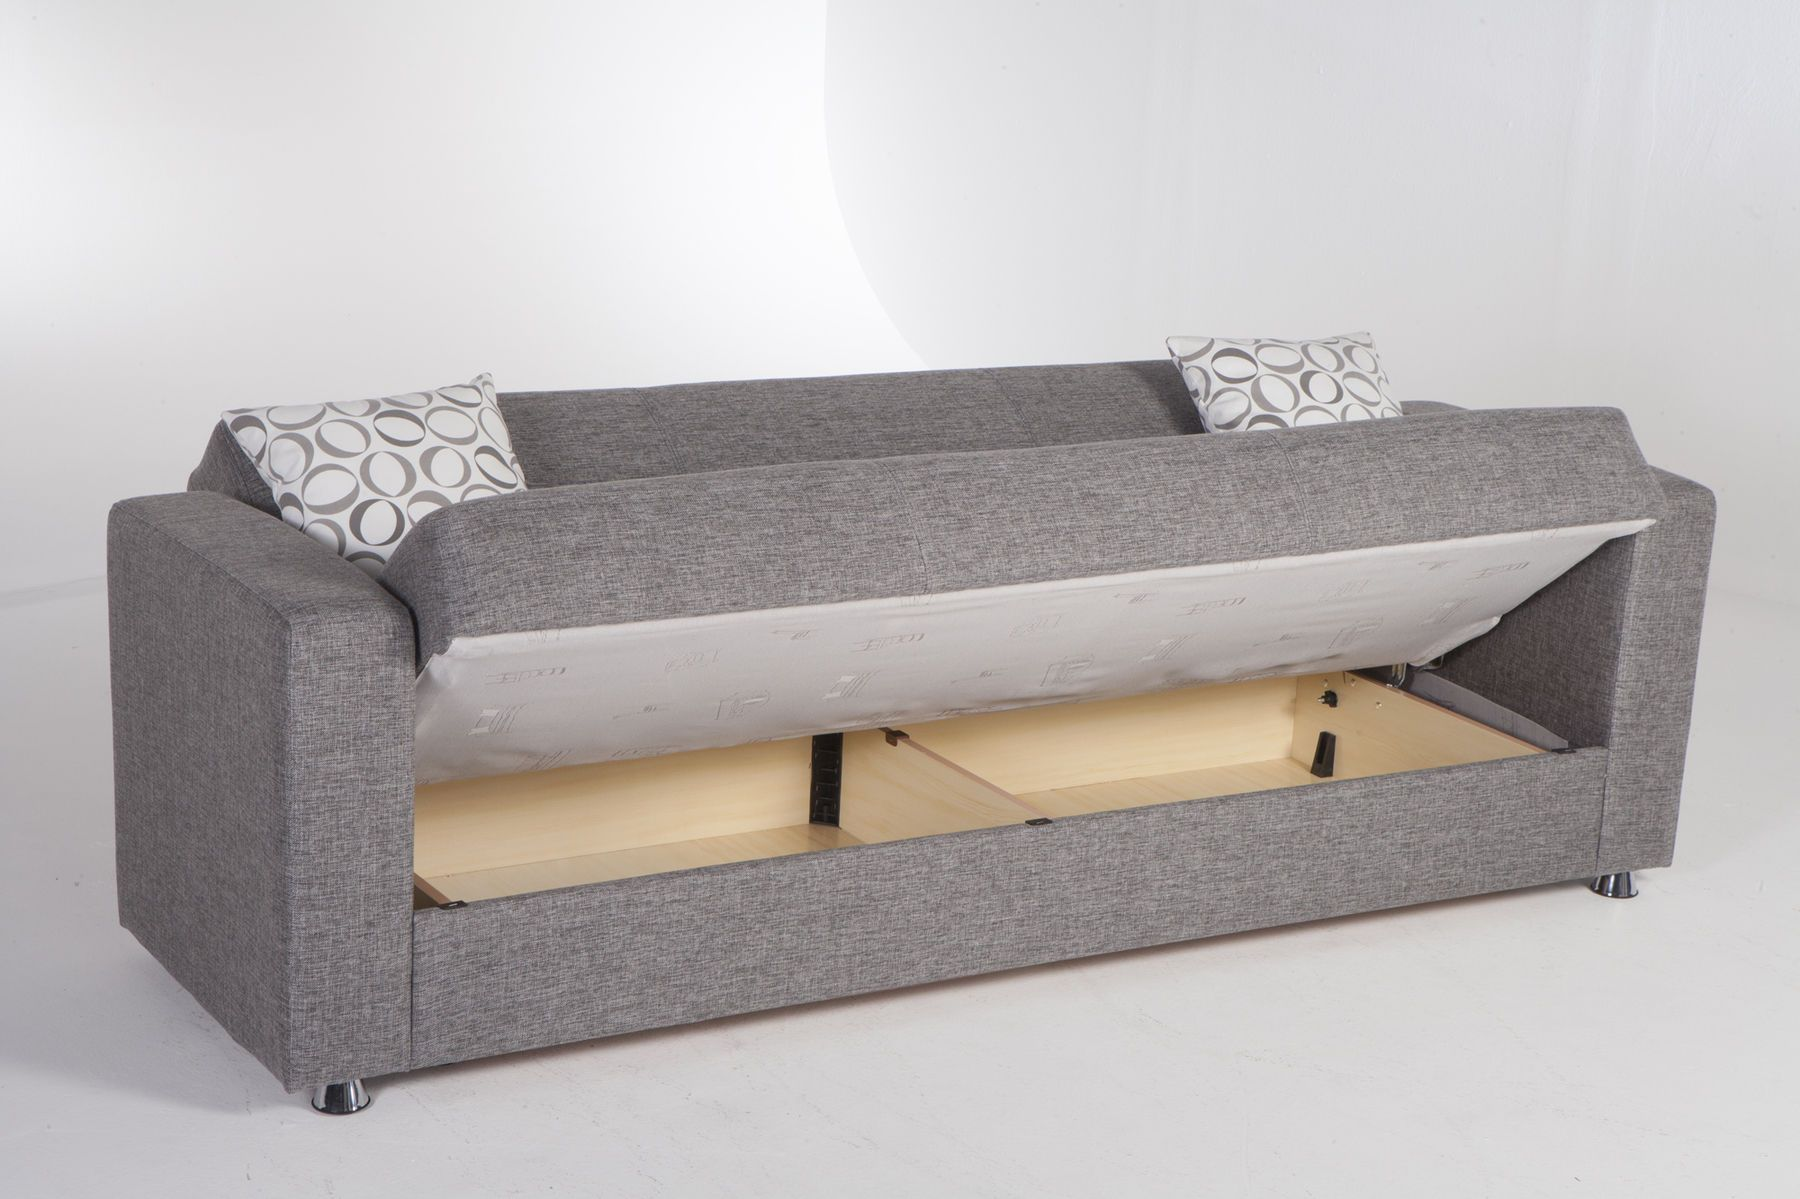 Tokyo Image Gray Sofa Tokyo 6227d Istikbal Fabric Sofas Sofa Bed With Storage Convertible Couch Fold Out Couch